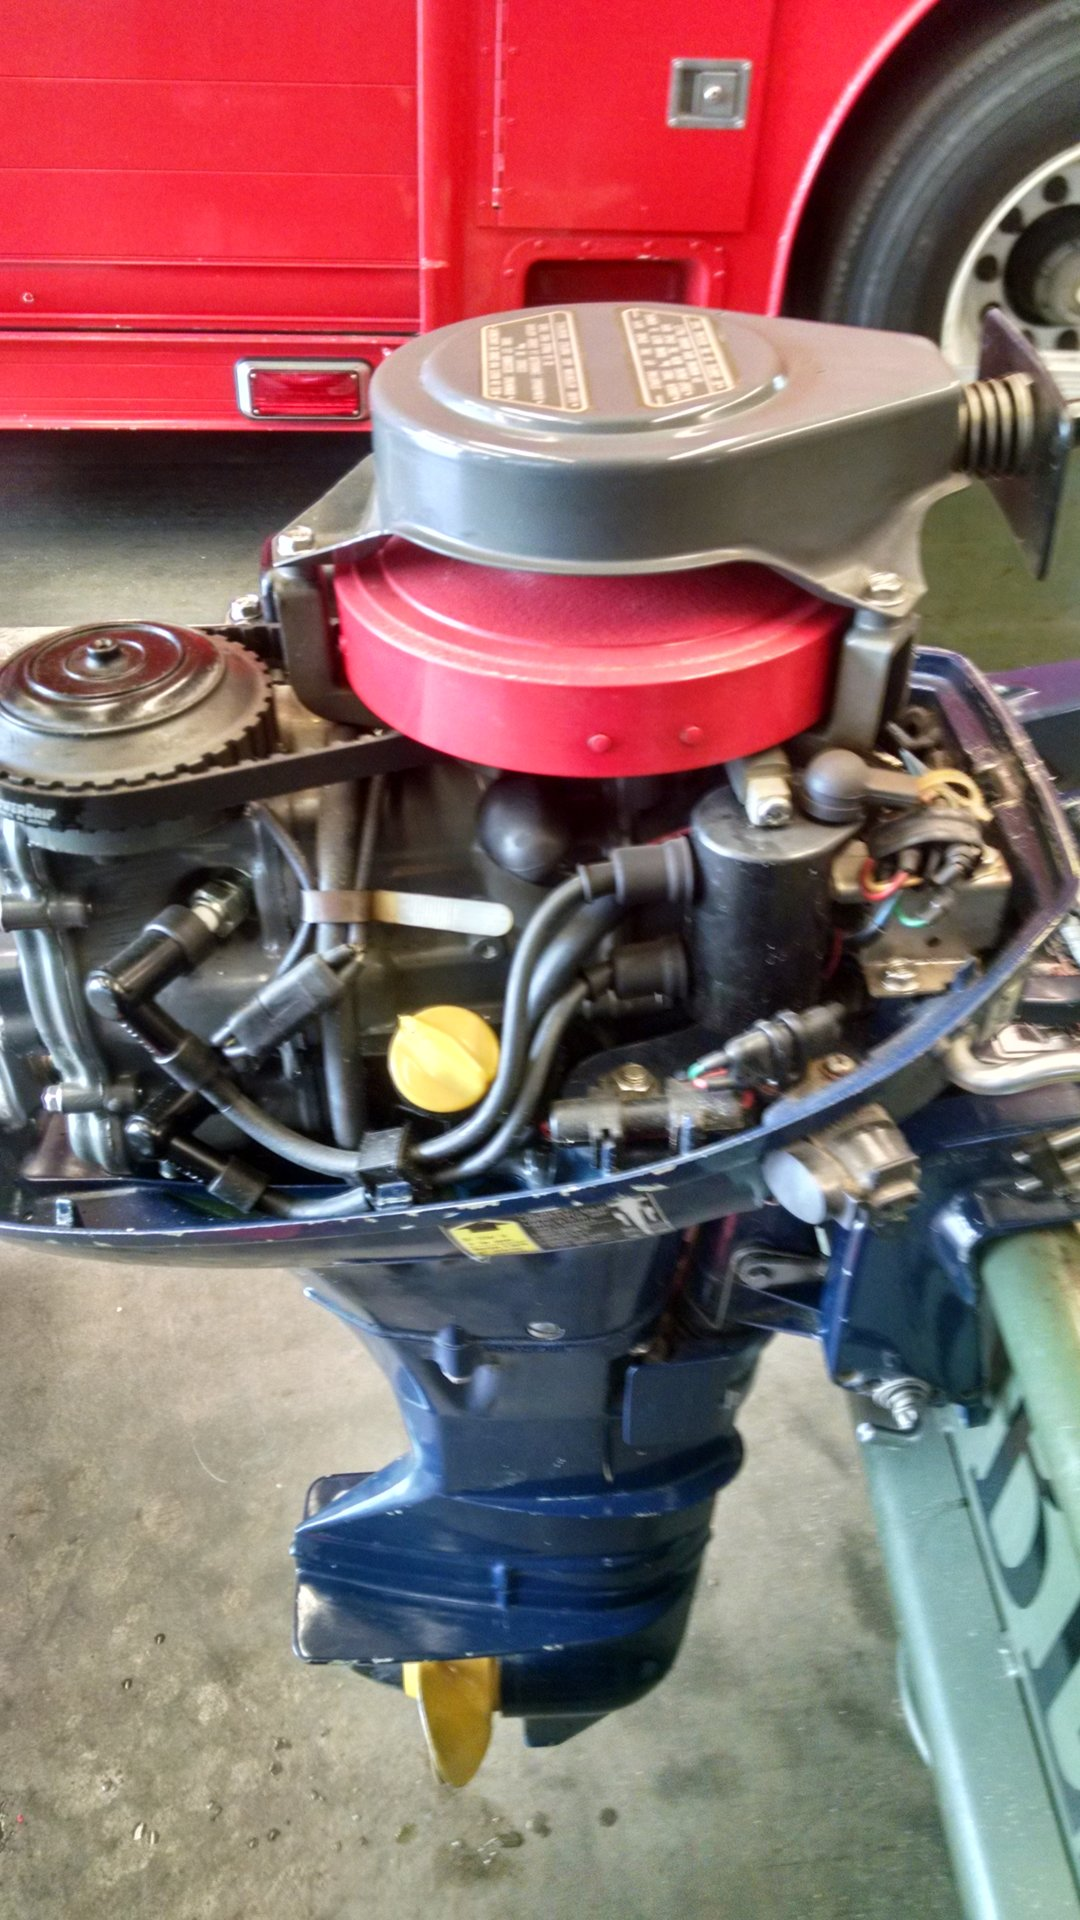 10hp Honda Outboard, B100S 4-stroke, excellent condition ...